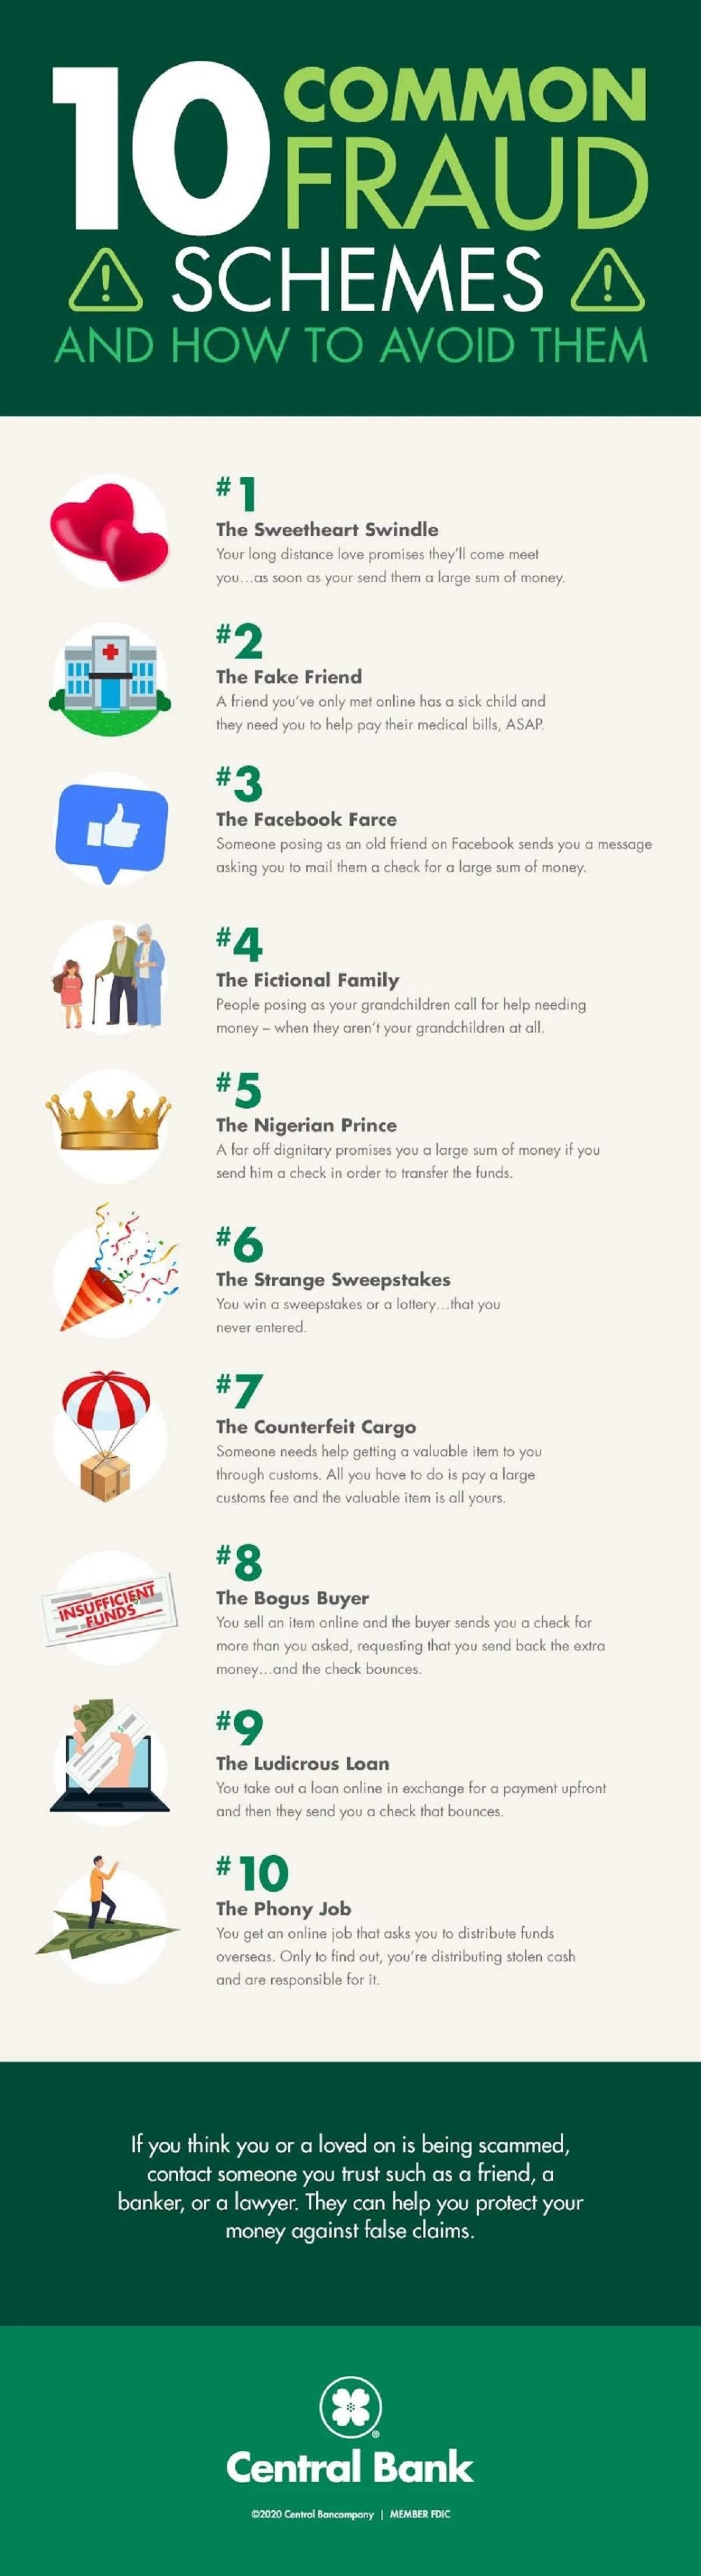 10 Common Fraud Schemes and How to Protect Your Money #infographic